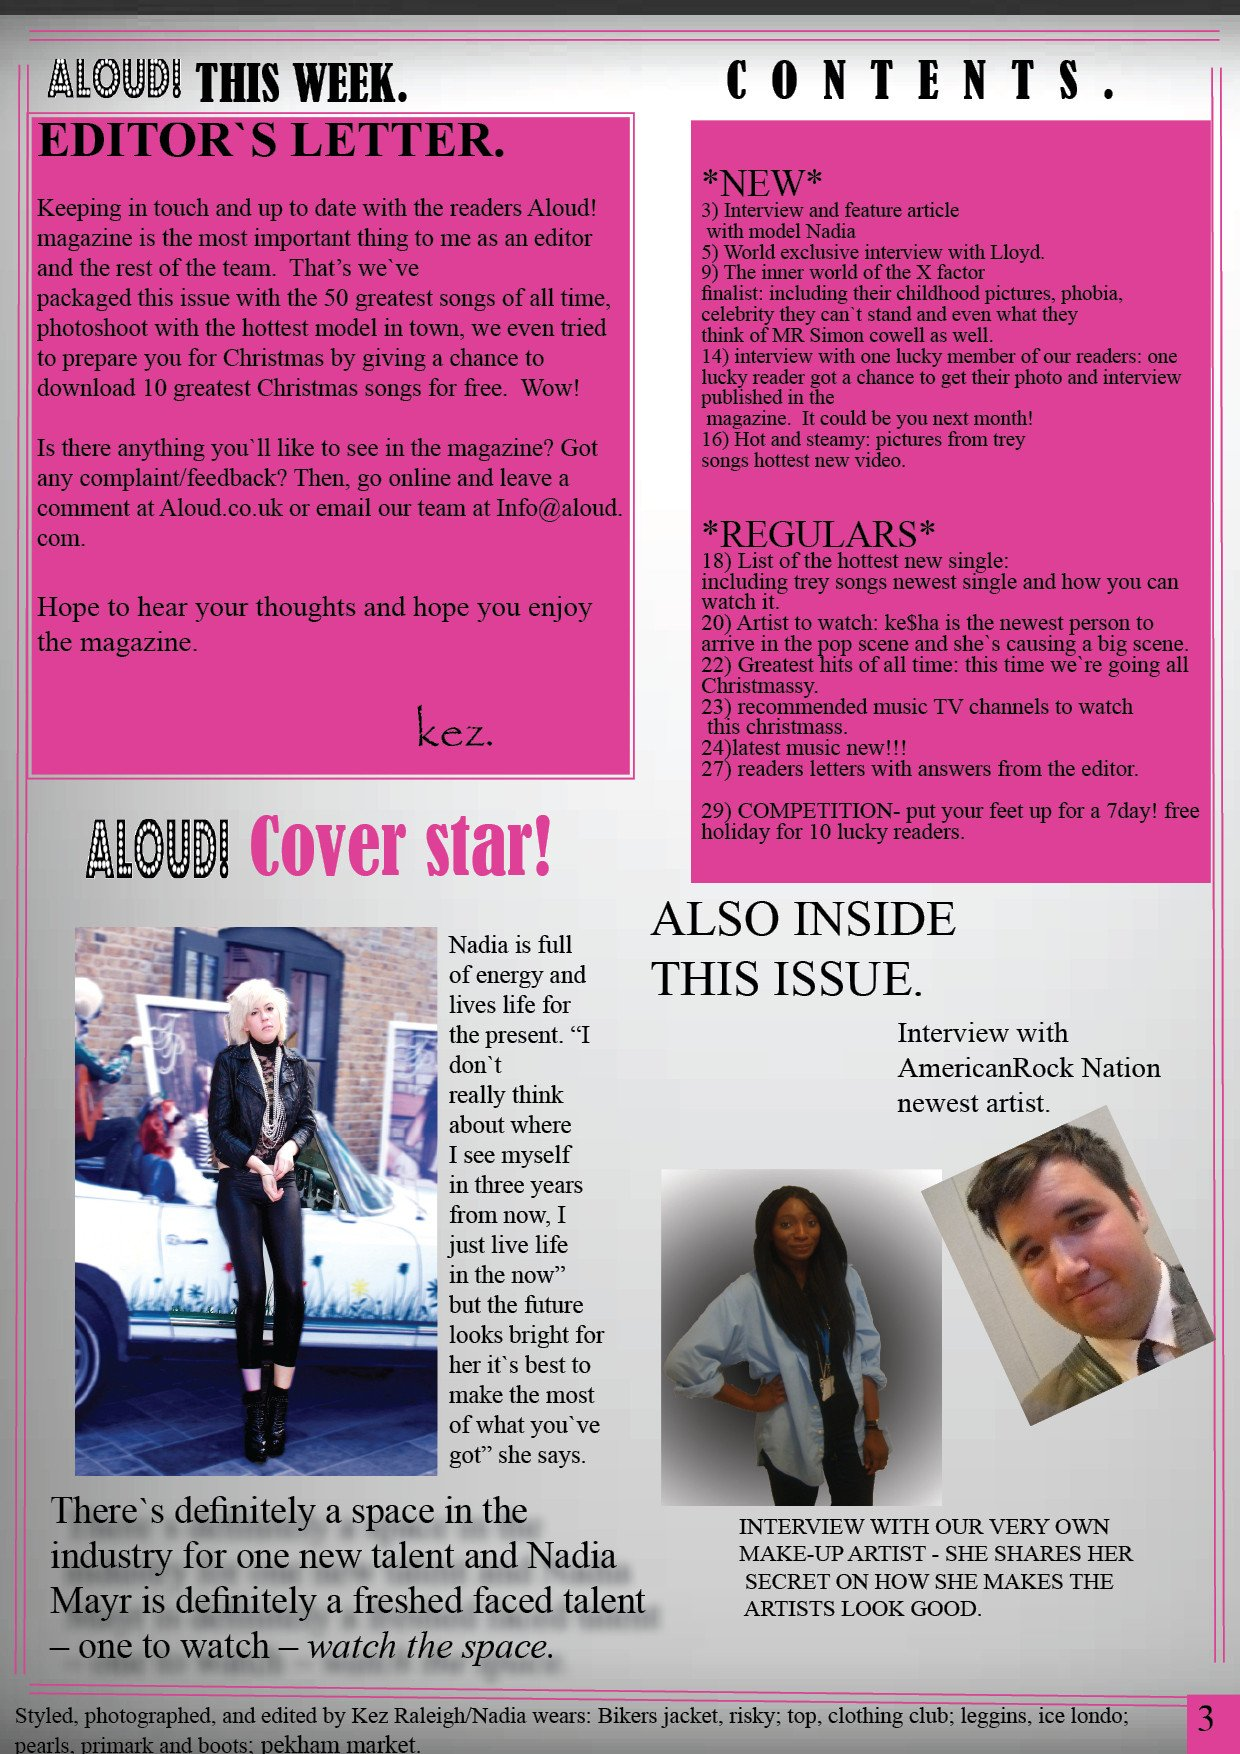 Magazine Template for Microsoft Word as Media Studies